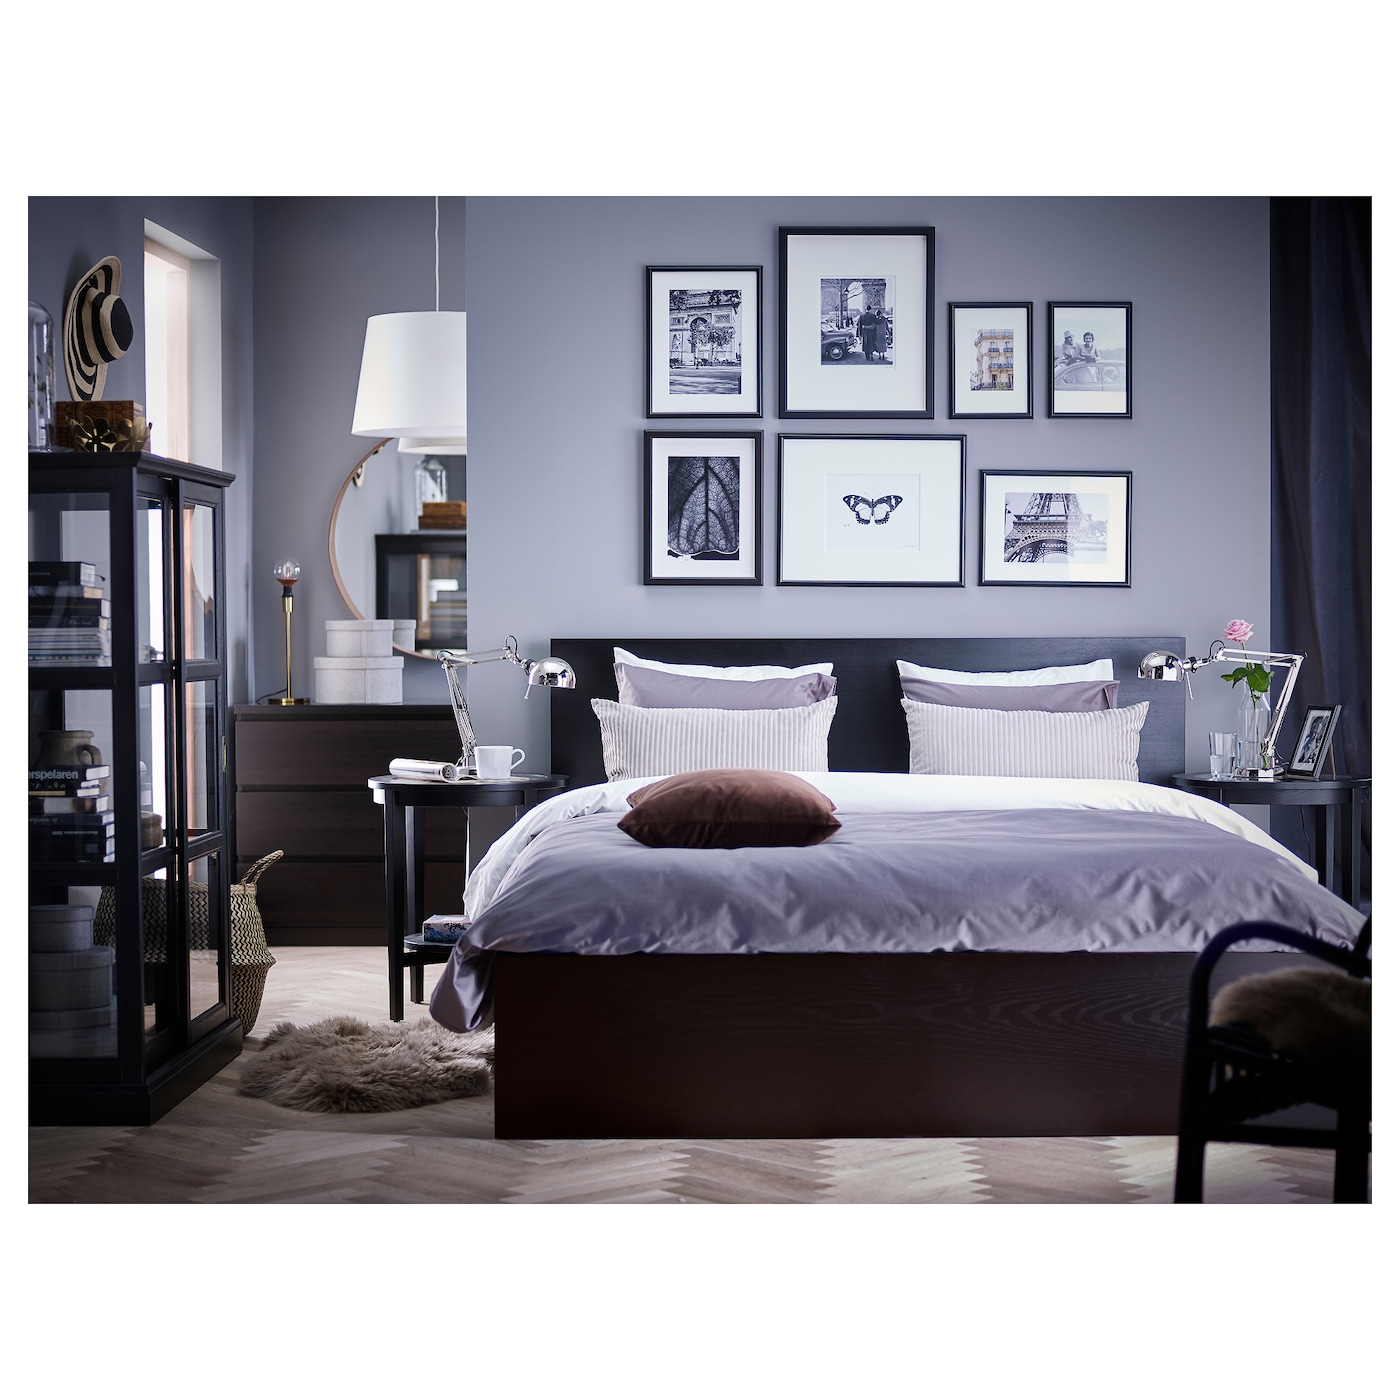 Gentil IKEA MALM Bed Frame, High Real Wood Veneer Will Make This Bed Age  Gracefully.